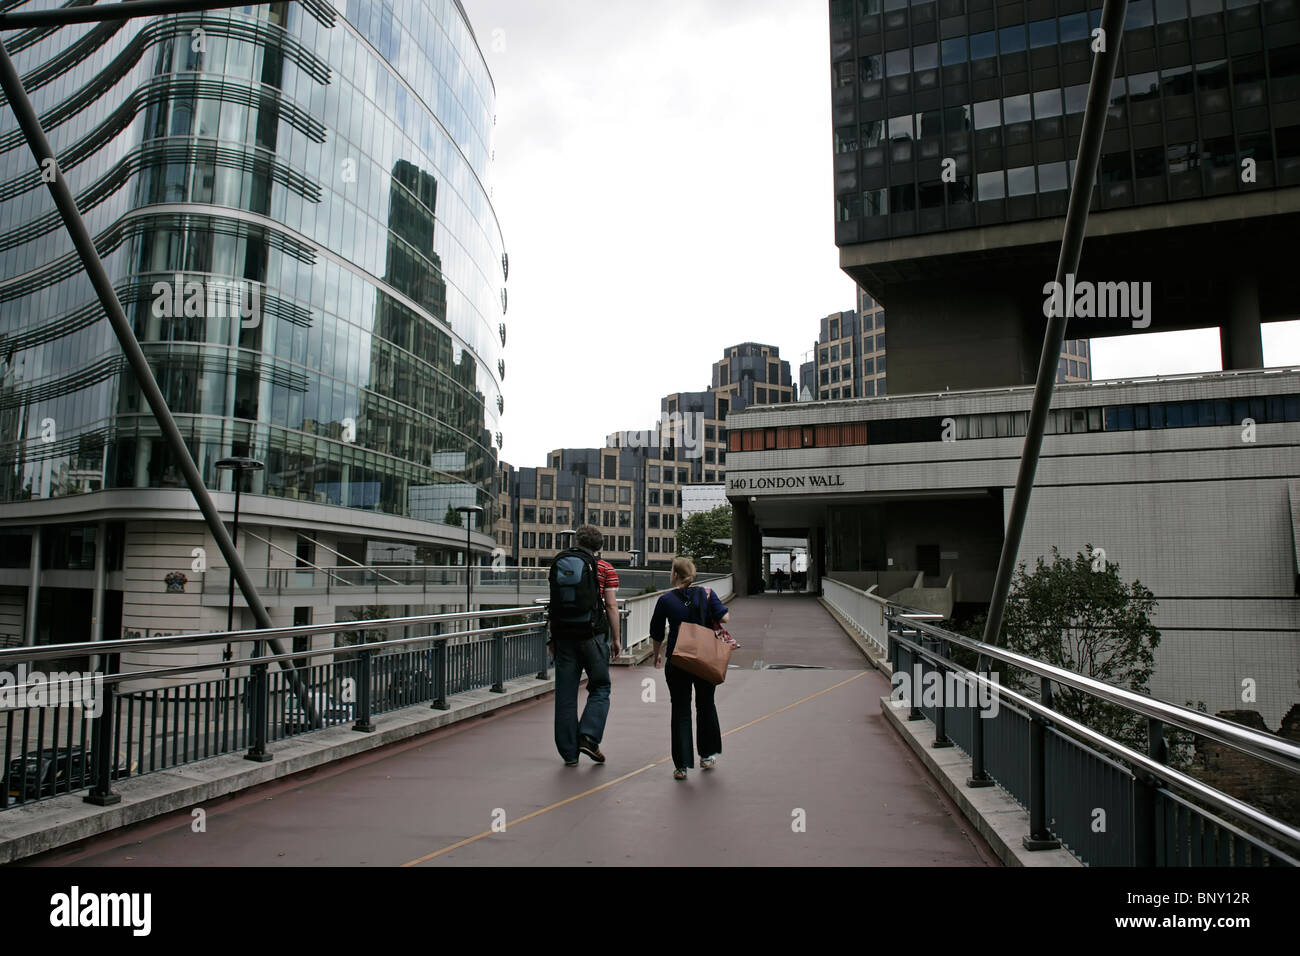 The high walkway along the London Wall close to the Barbican, London, UK - Stock Image